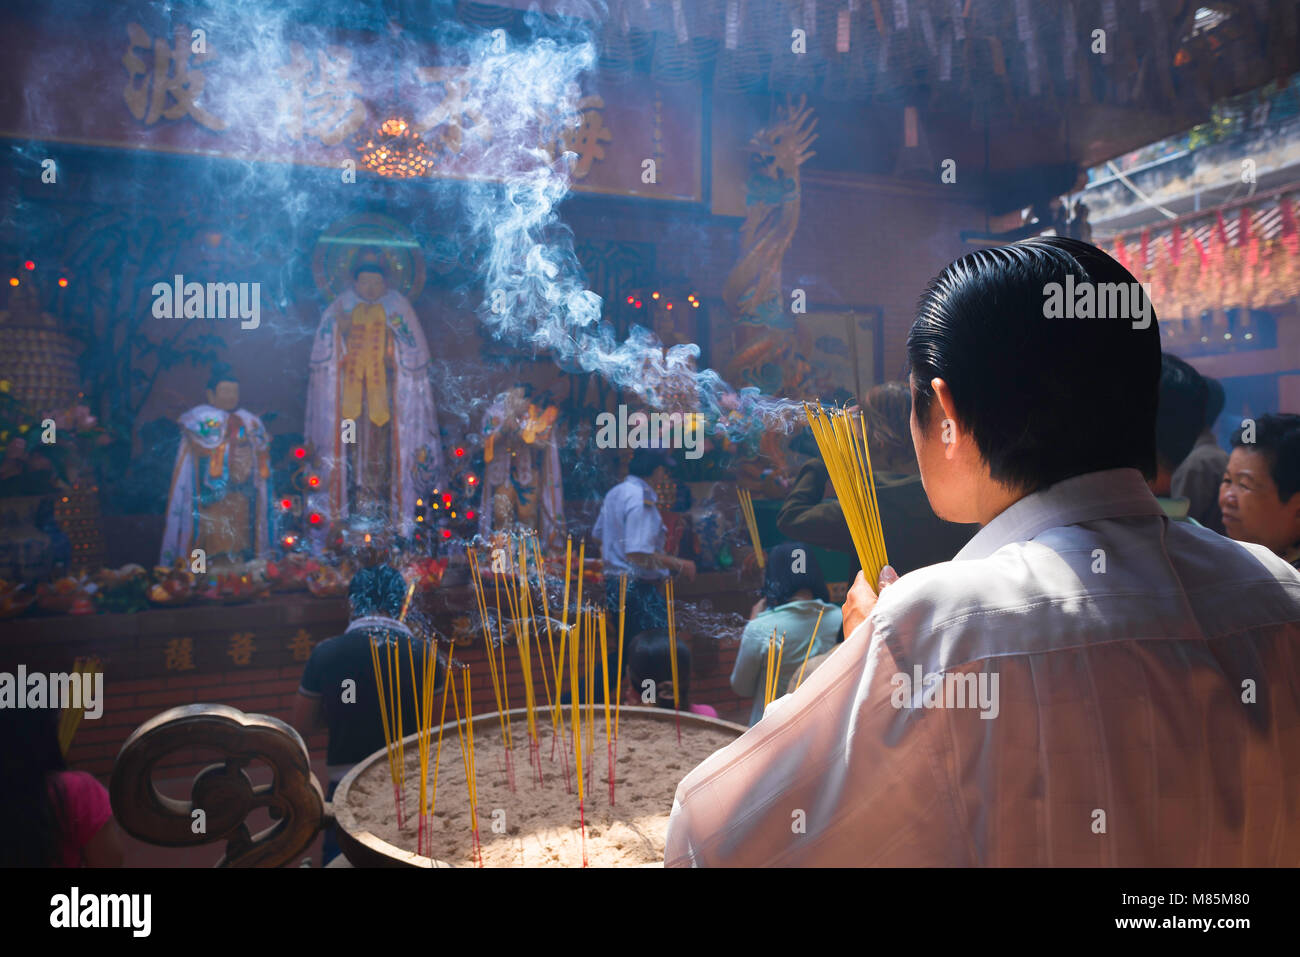 Man prayer Southeast Asia, rear view of a man praying in the Quan Am pagoda - temple - in the Cholon area of Ho - Stock Image